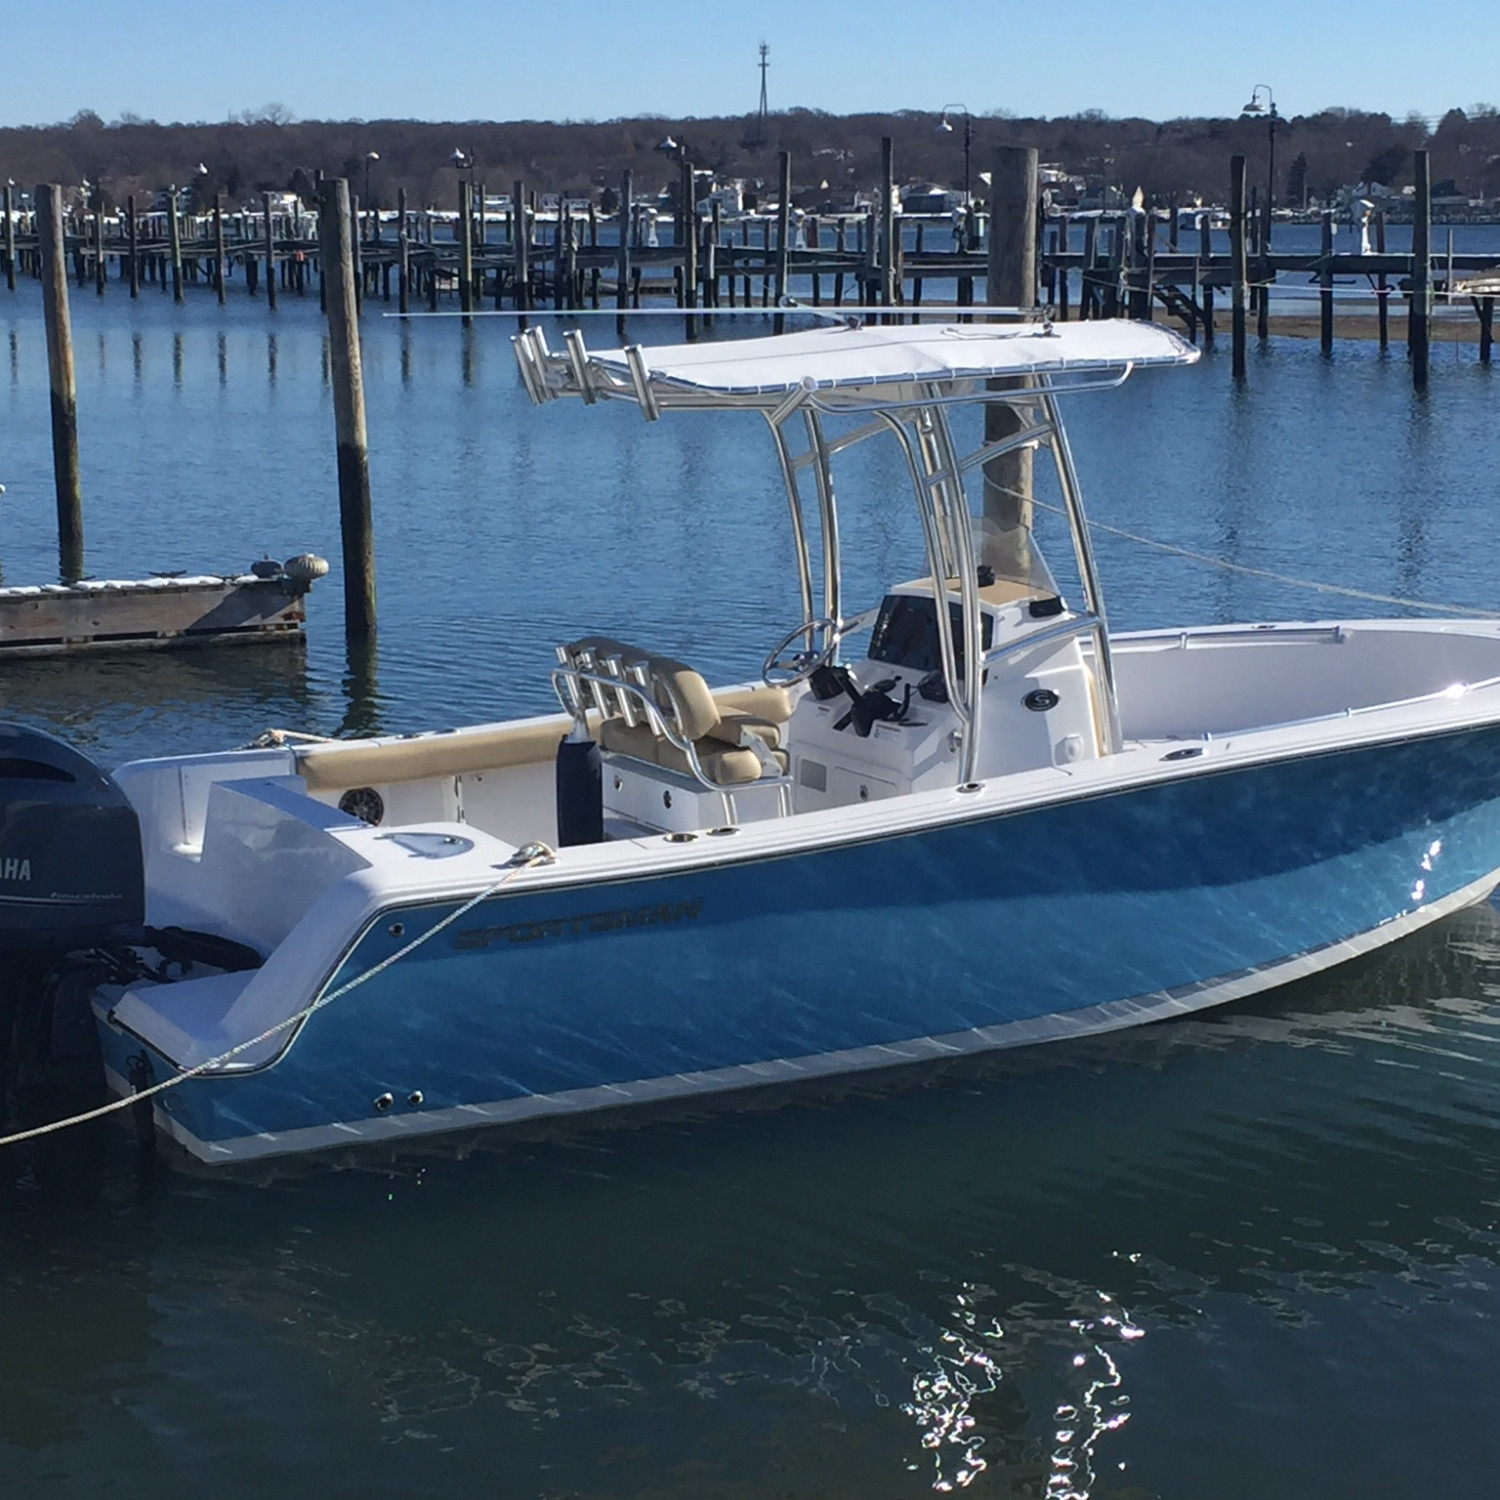 Title: Is it time???? - On board their Sportsman Open 232 Center Console - Location: Niantic ct. Participating in the Photo Contest #SportsmanMarch2018